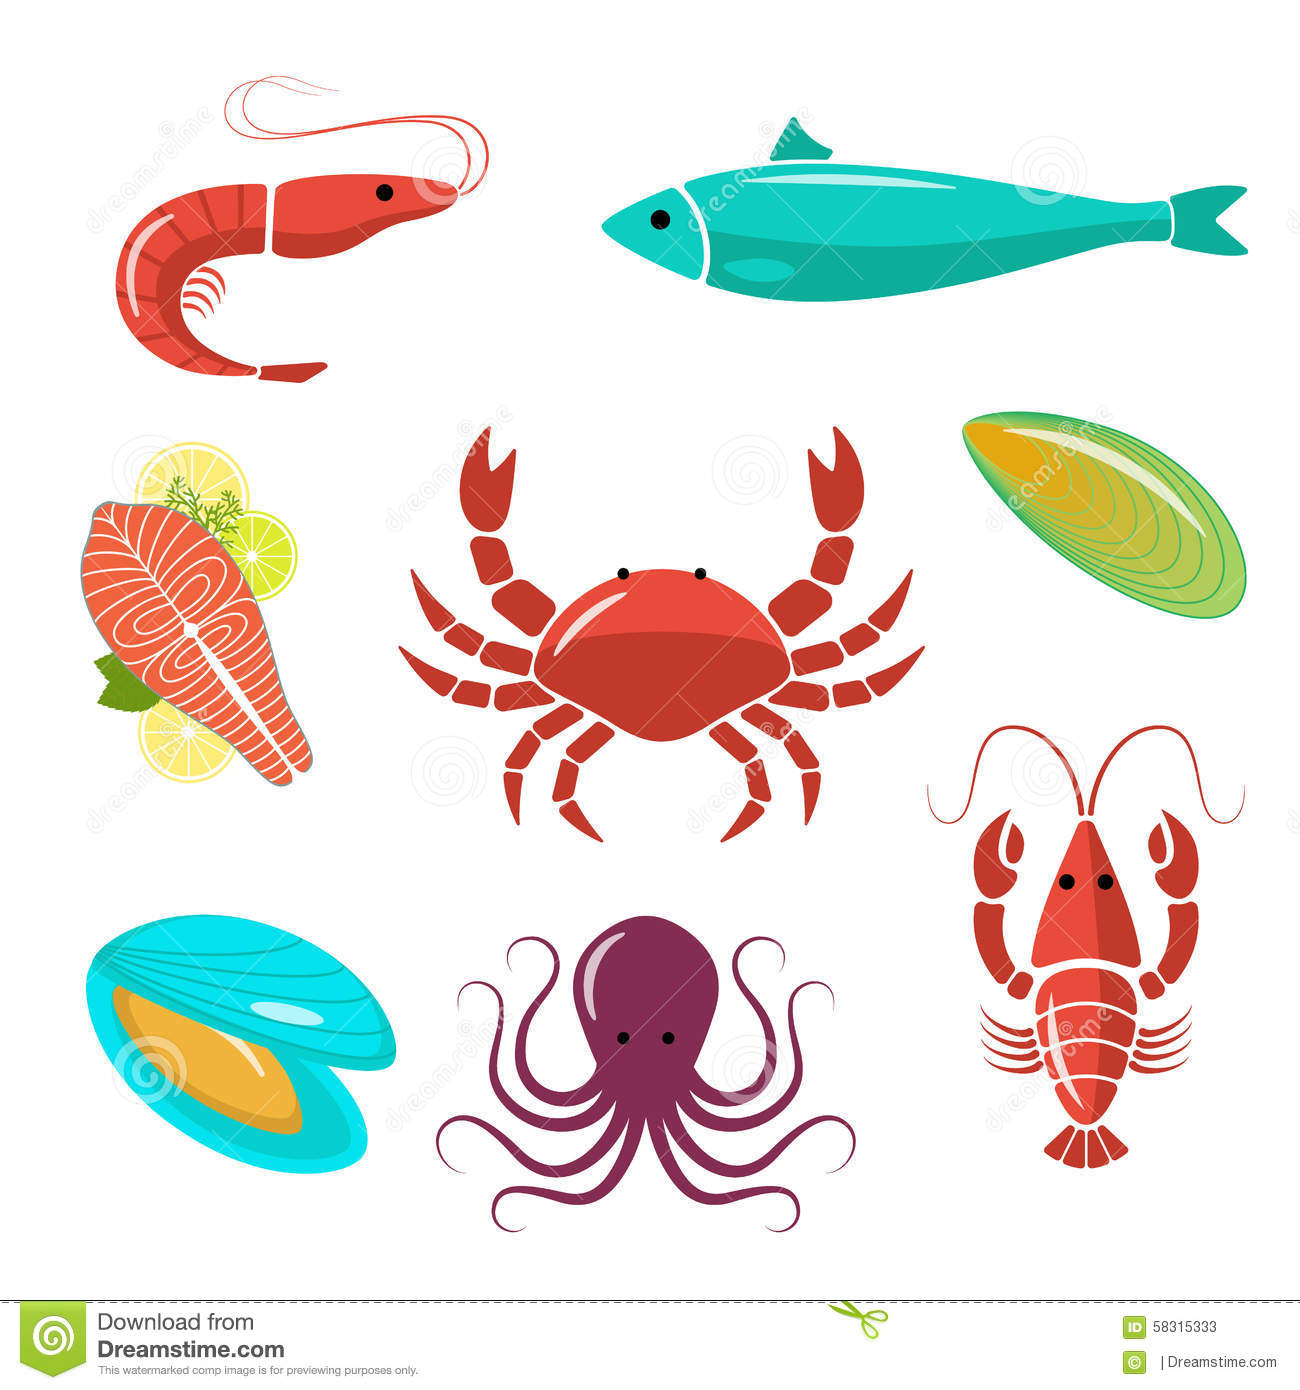 Seafood Flat Kit. Fish, Shrimp, Crab, Mussels, Oyster. Stock Vector - Image: 58315333